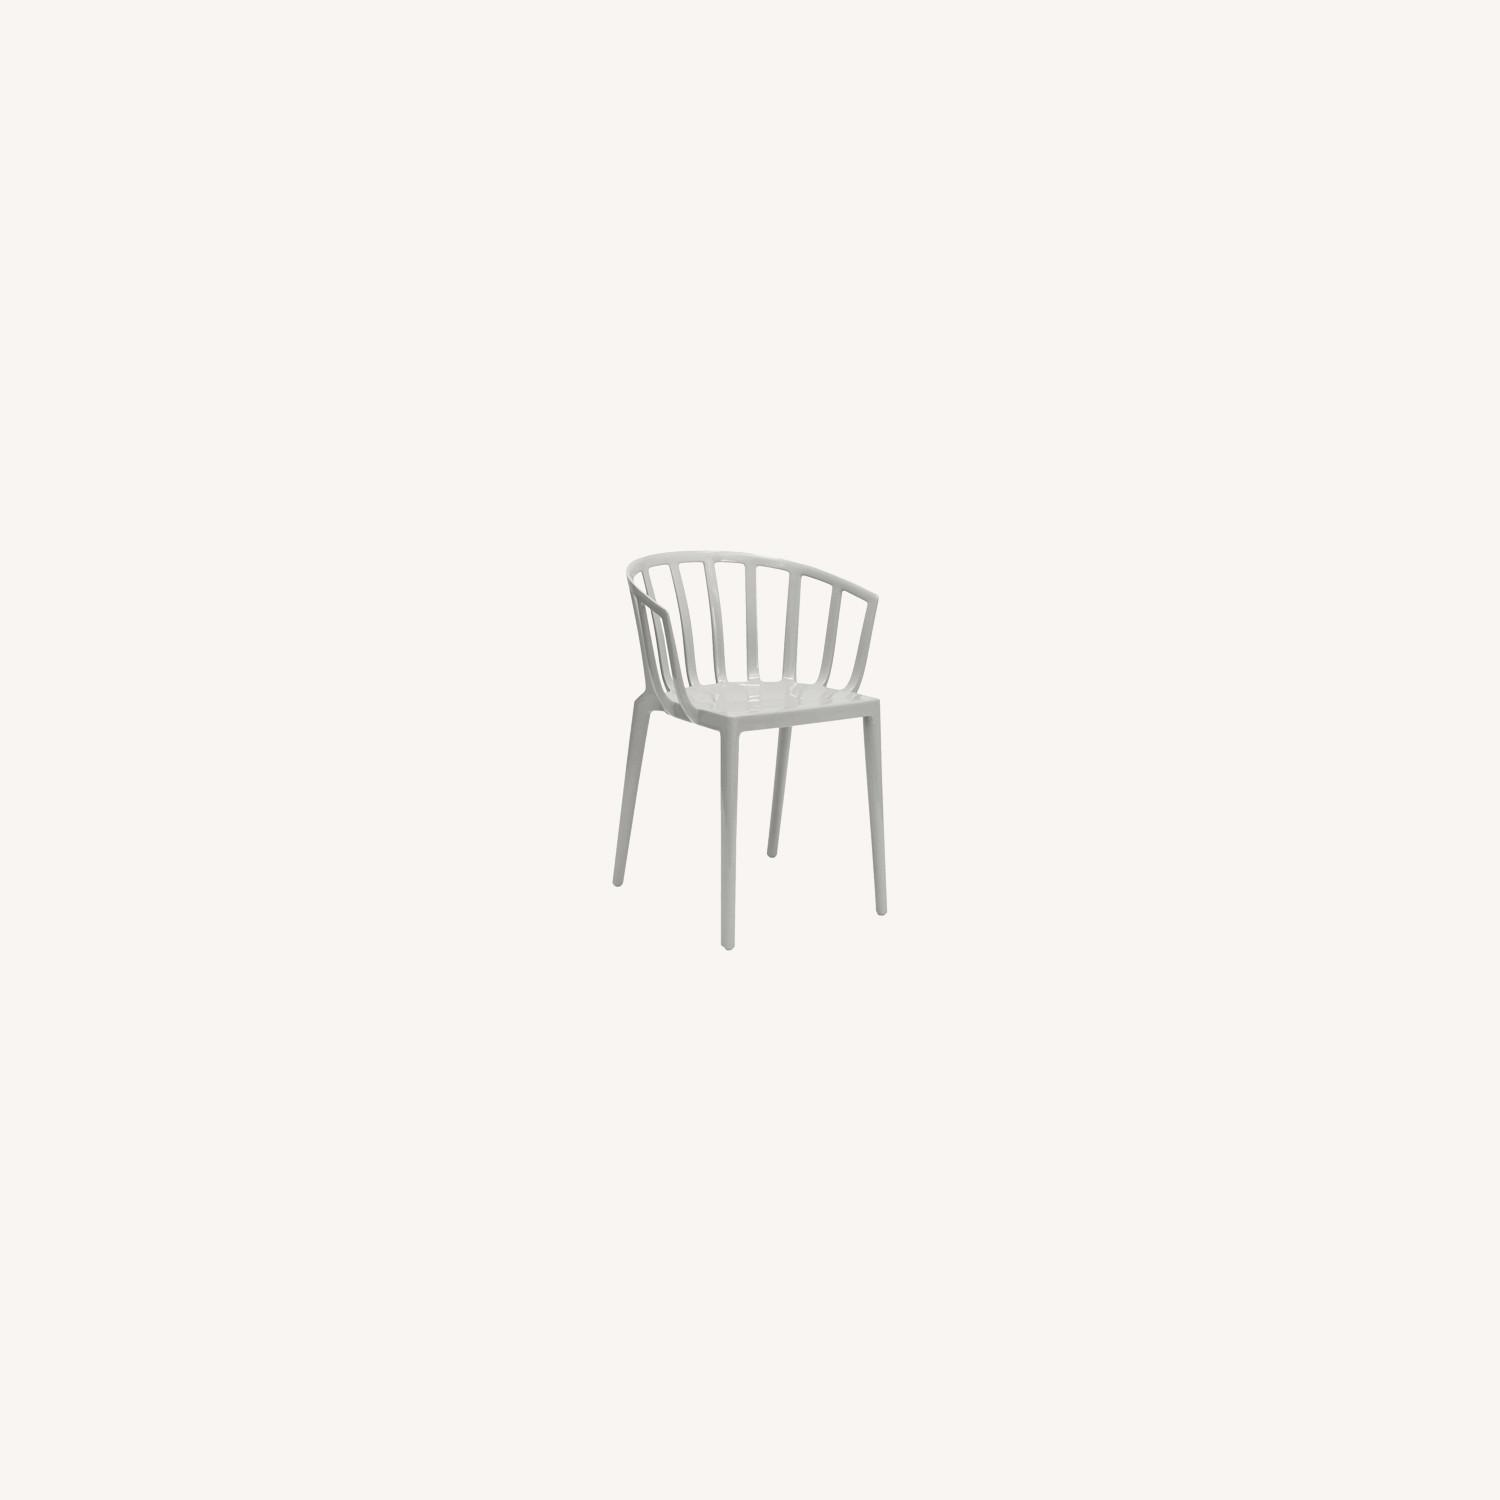 KARTELL Venice Chairs in Dove Gray Set of Two - image-0